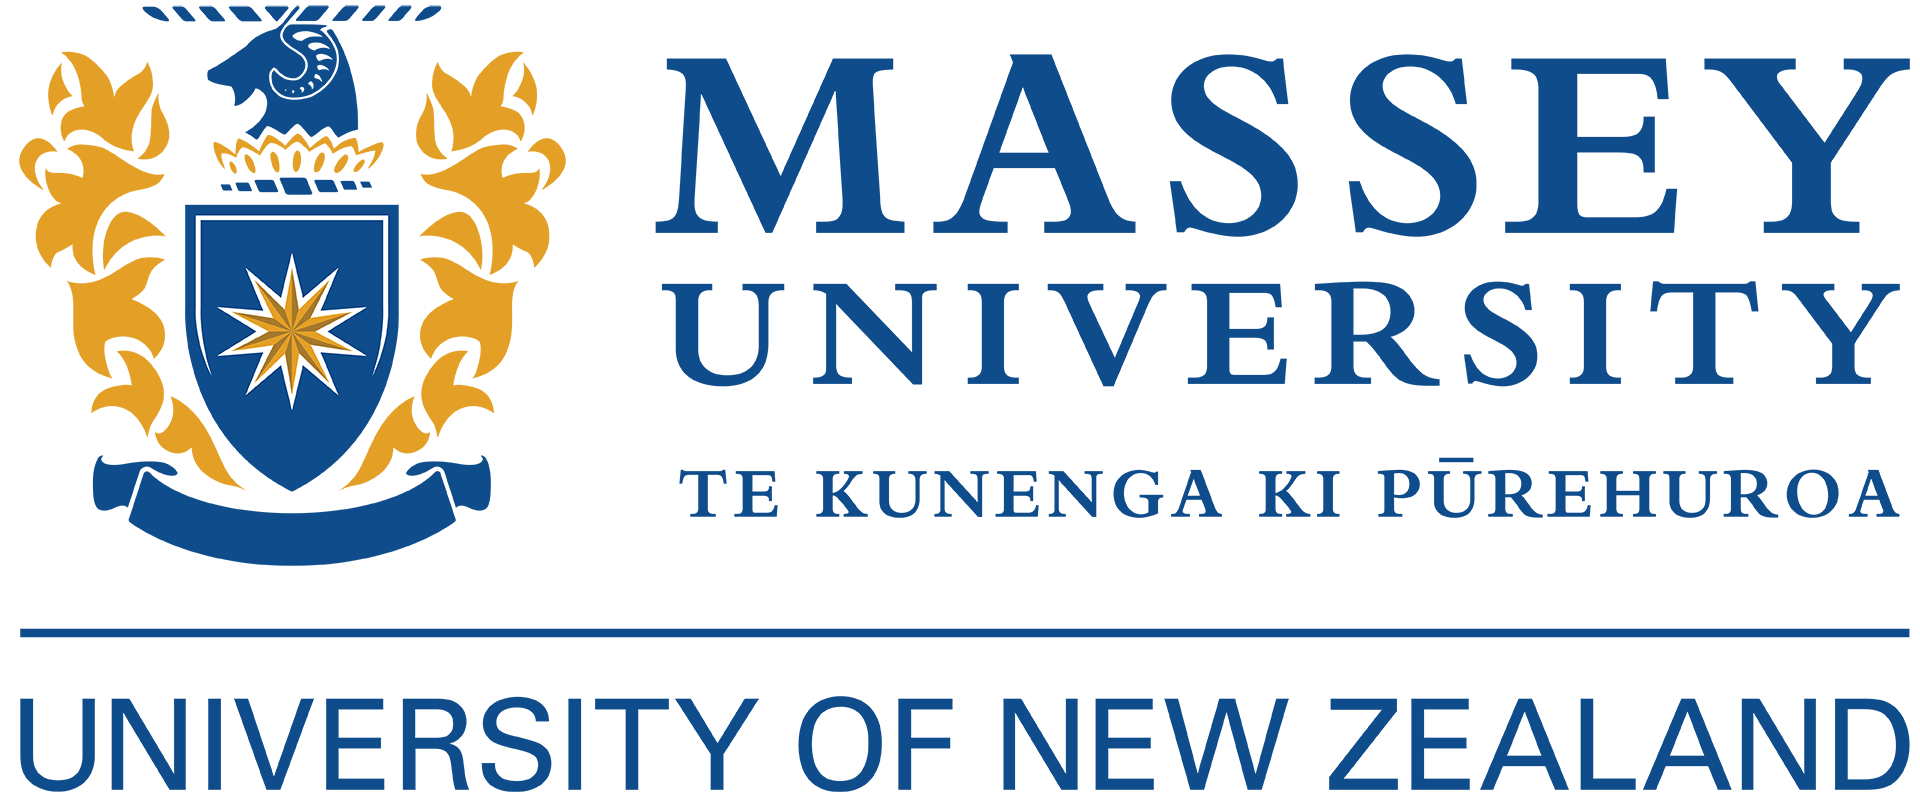 messay university Massey university, auckland, is a compact and modern campus, architecturally designed in the spanish mission style lecture facilities are state-of-the-art, and facilities are both spacious and contemporary.